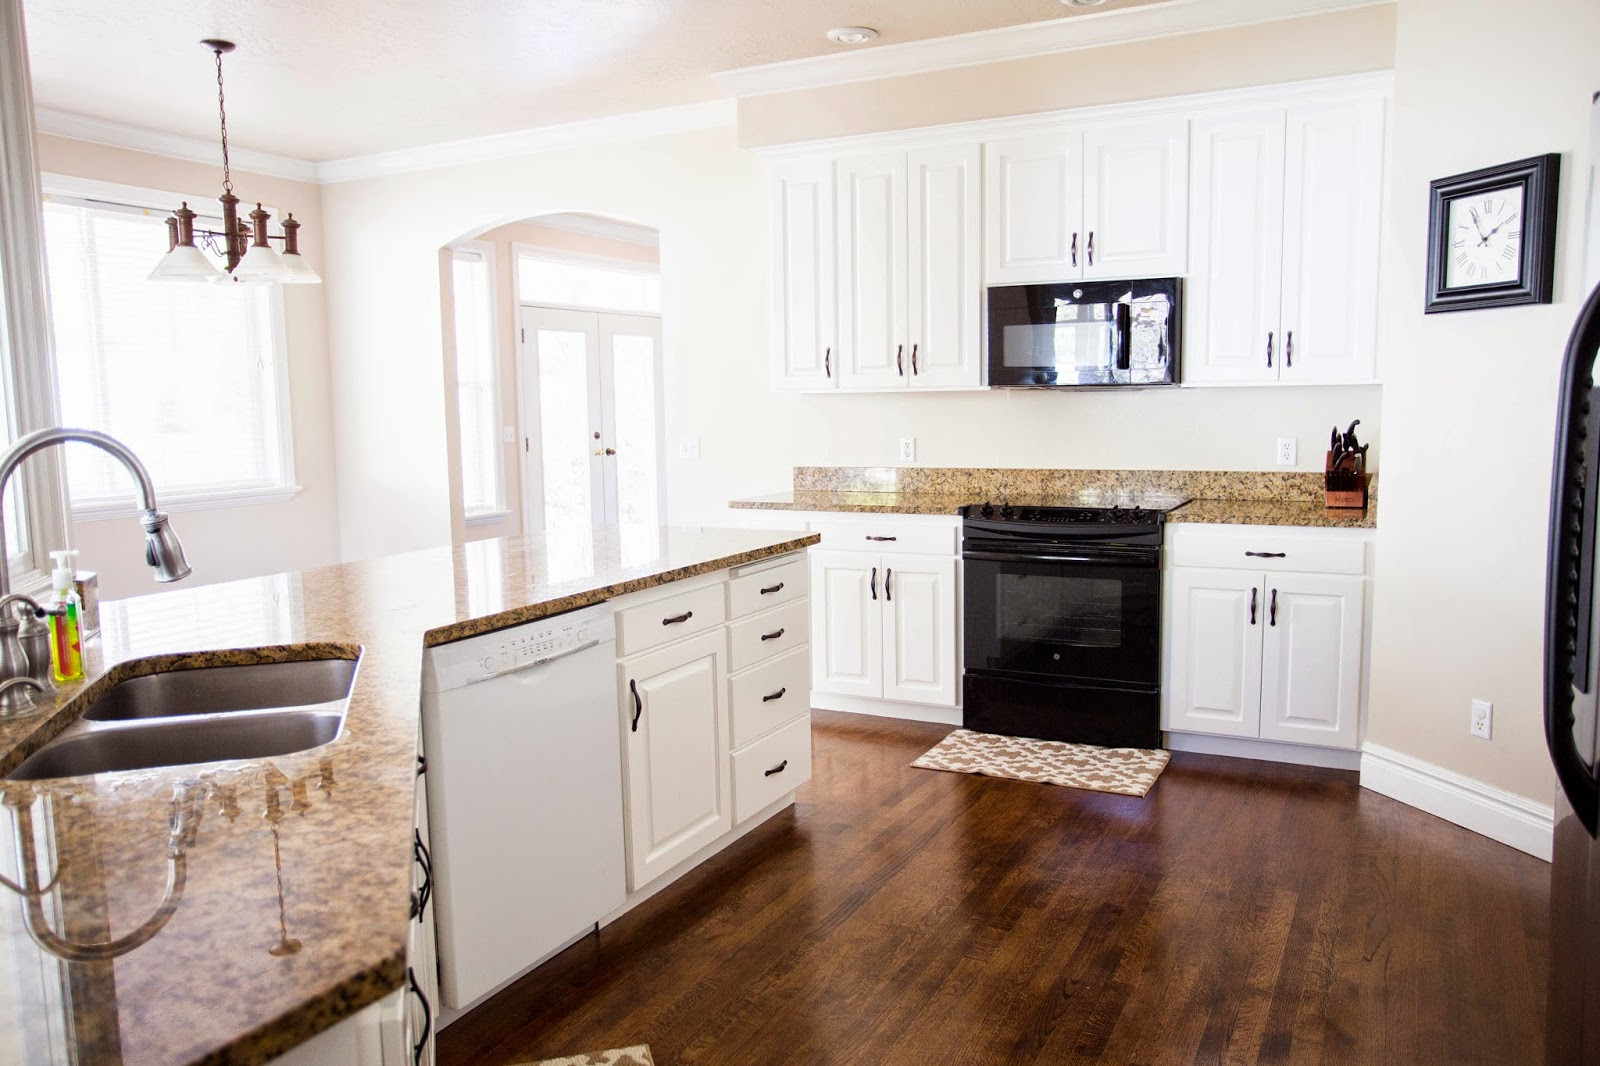 Best ideas about Painting Kitchen Cabinets DIY . Save or Pin do it yourself divas DIY How to Paint Kitchen Cabinets Now.